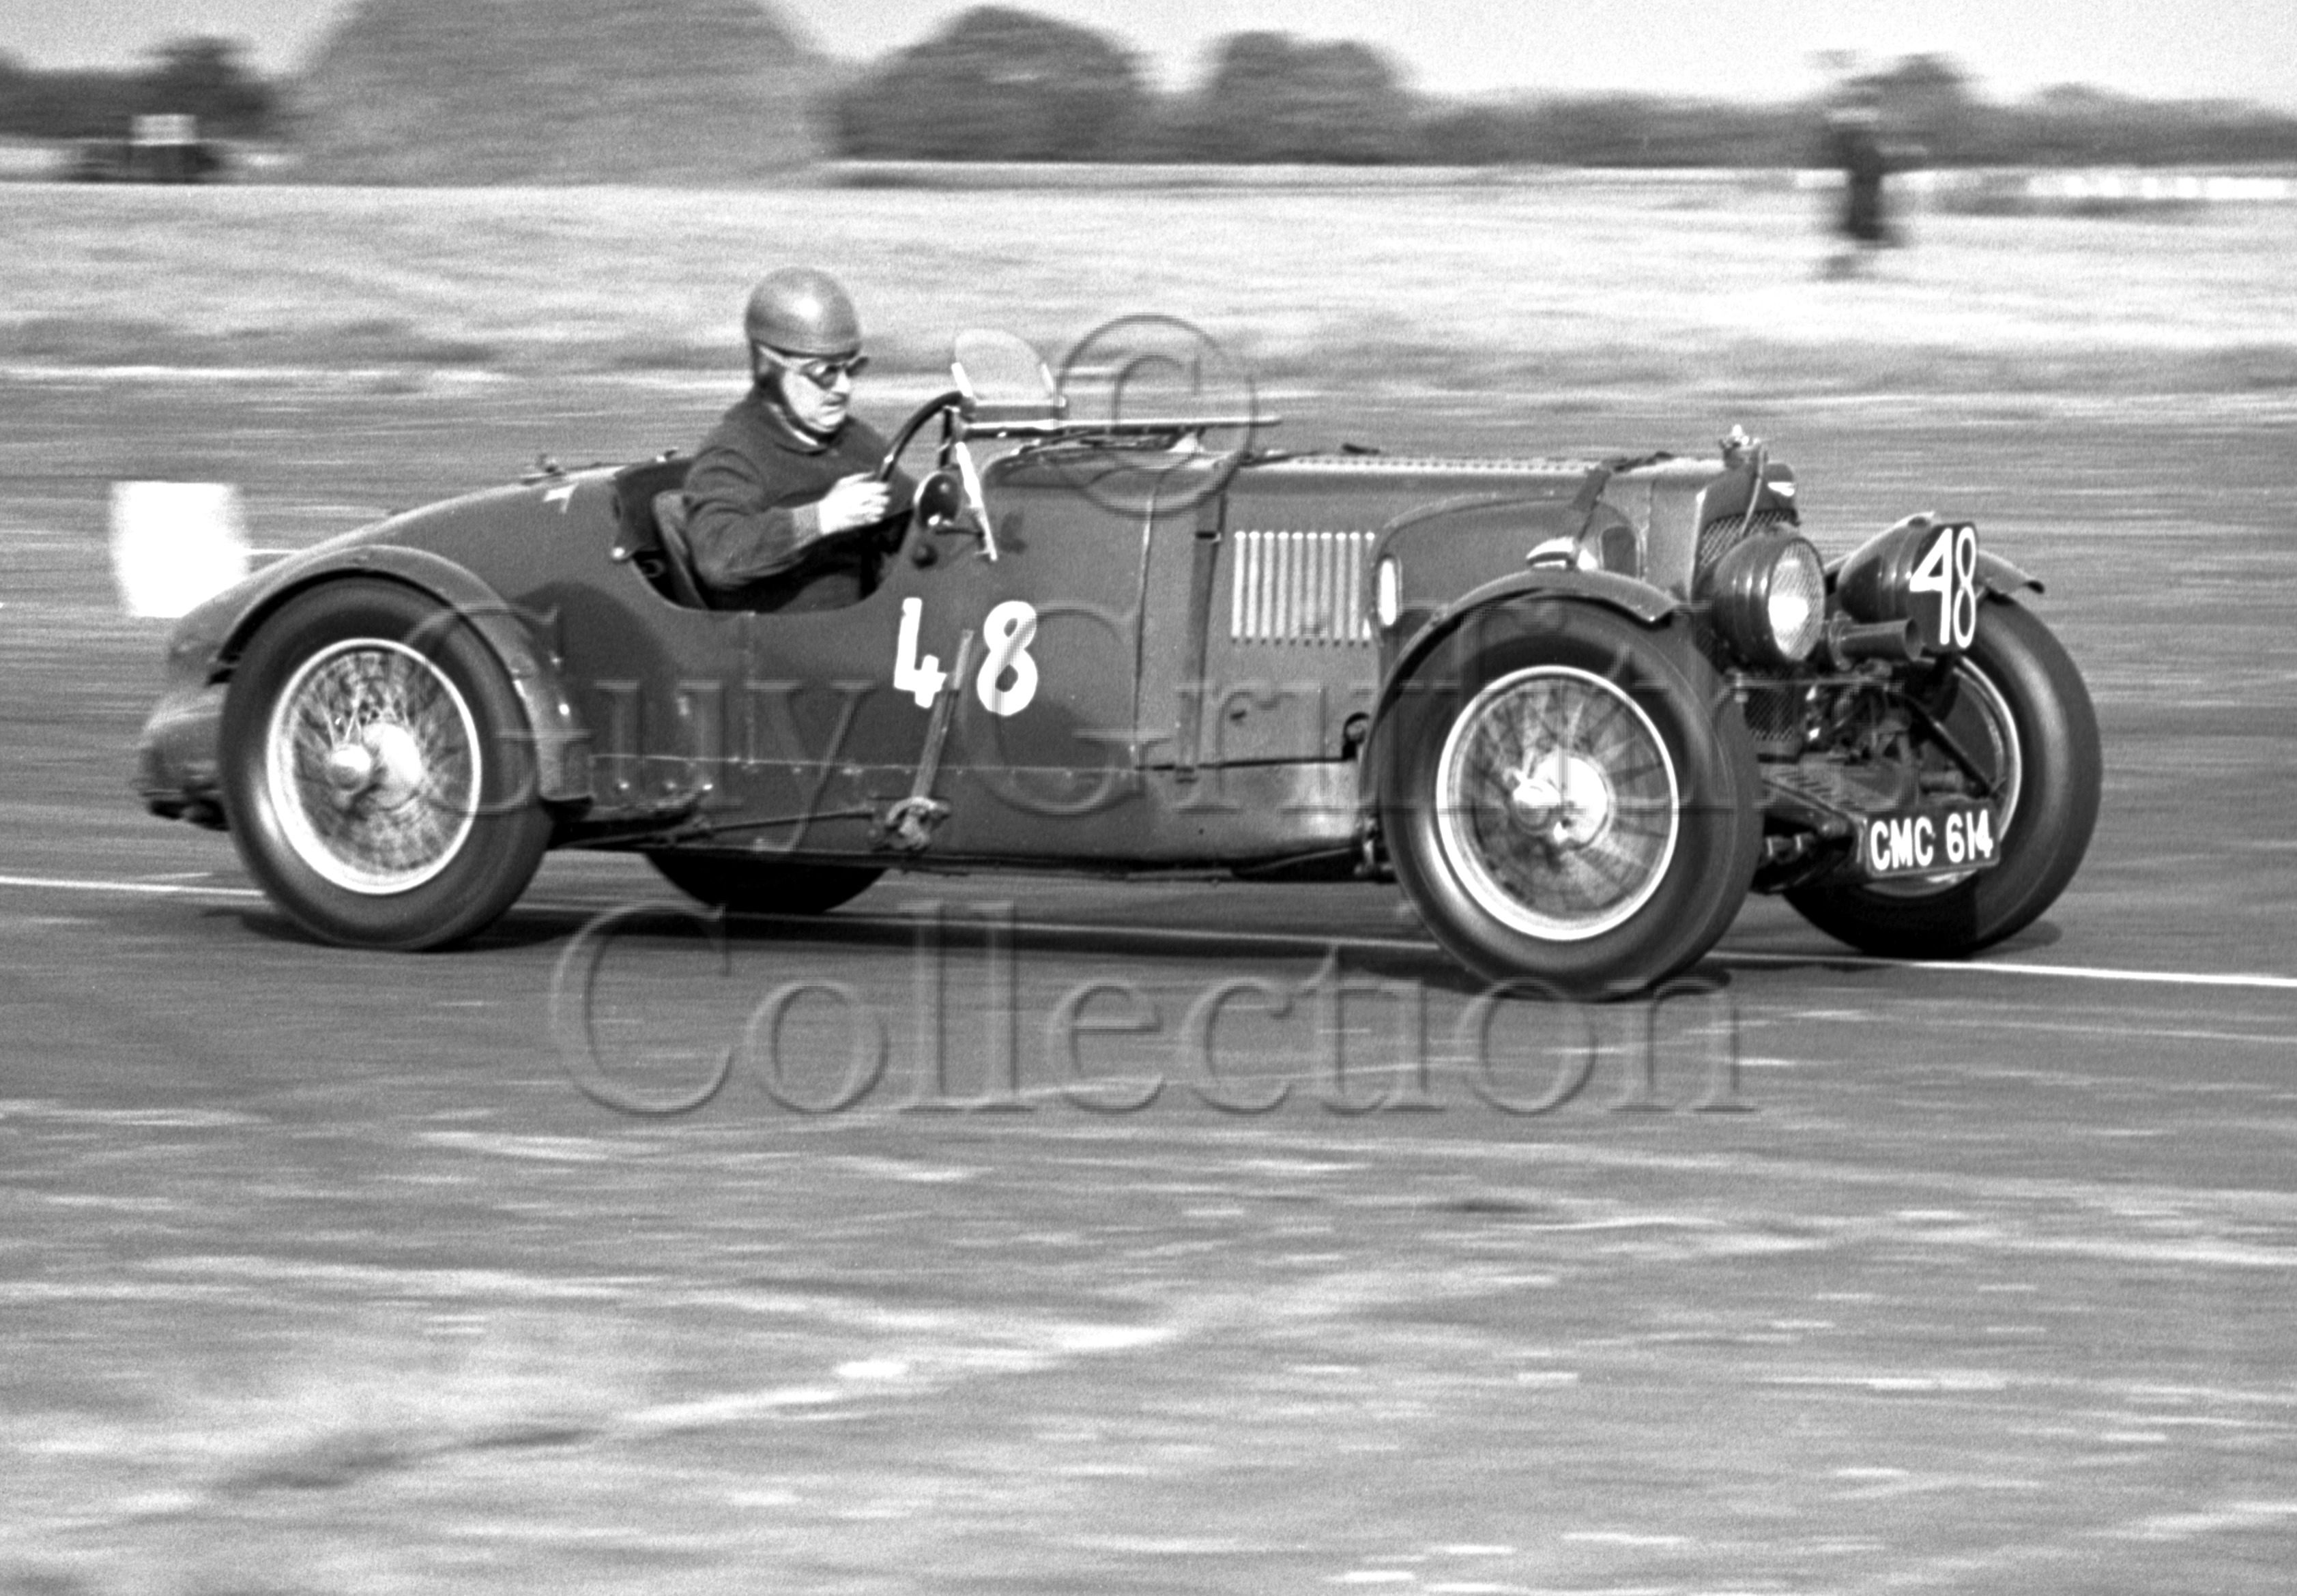 61-1001–R-F-McNab-Meredith–Aston-Martin–Snetterton–20-09-1952.jpg - The Guy Griffiths Collection